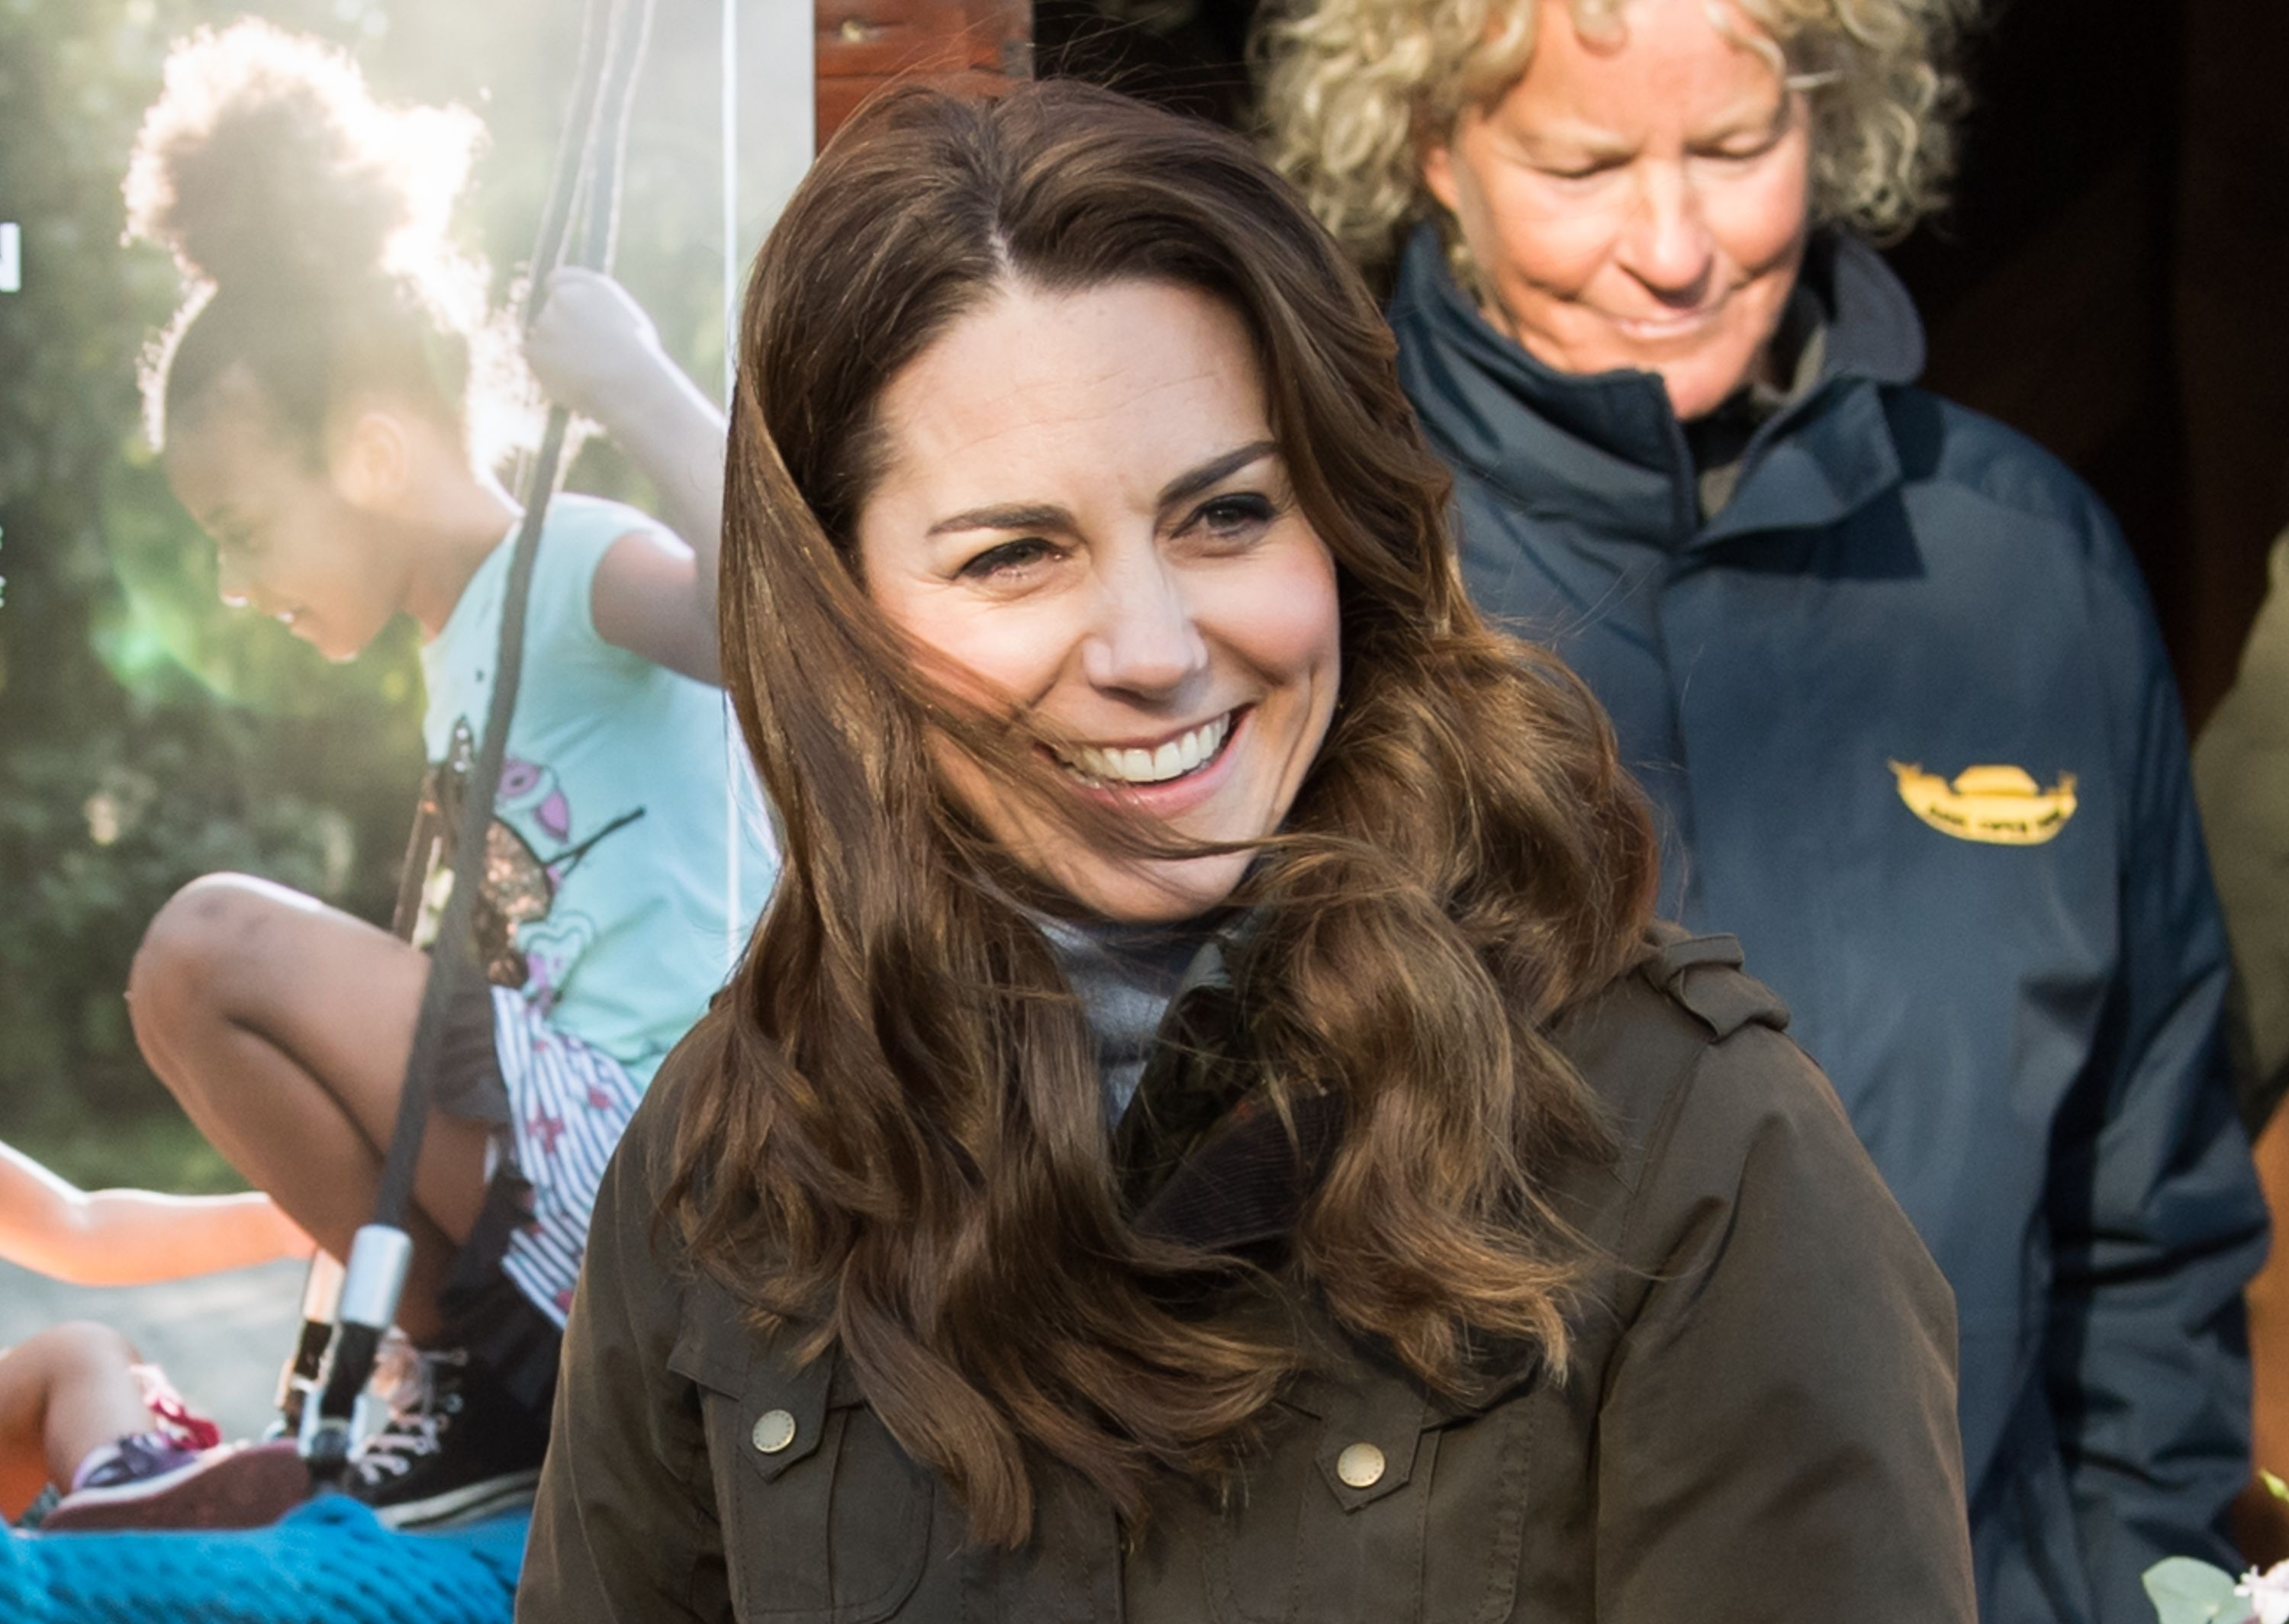 Kate Middleton Posts a Personal Instagram in Support of Her U.K. Childhood Development Survey